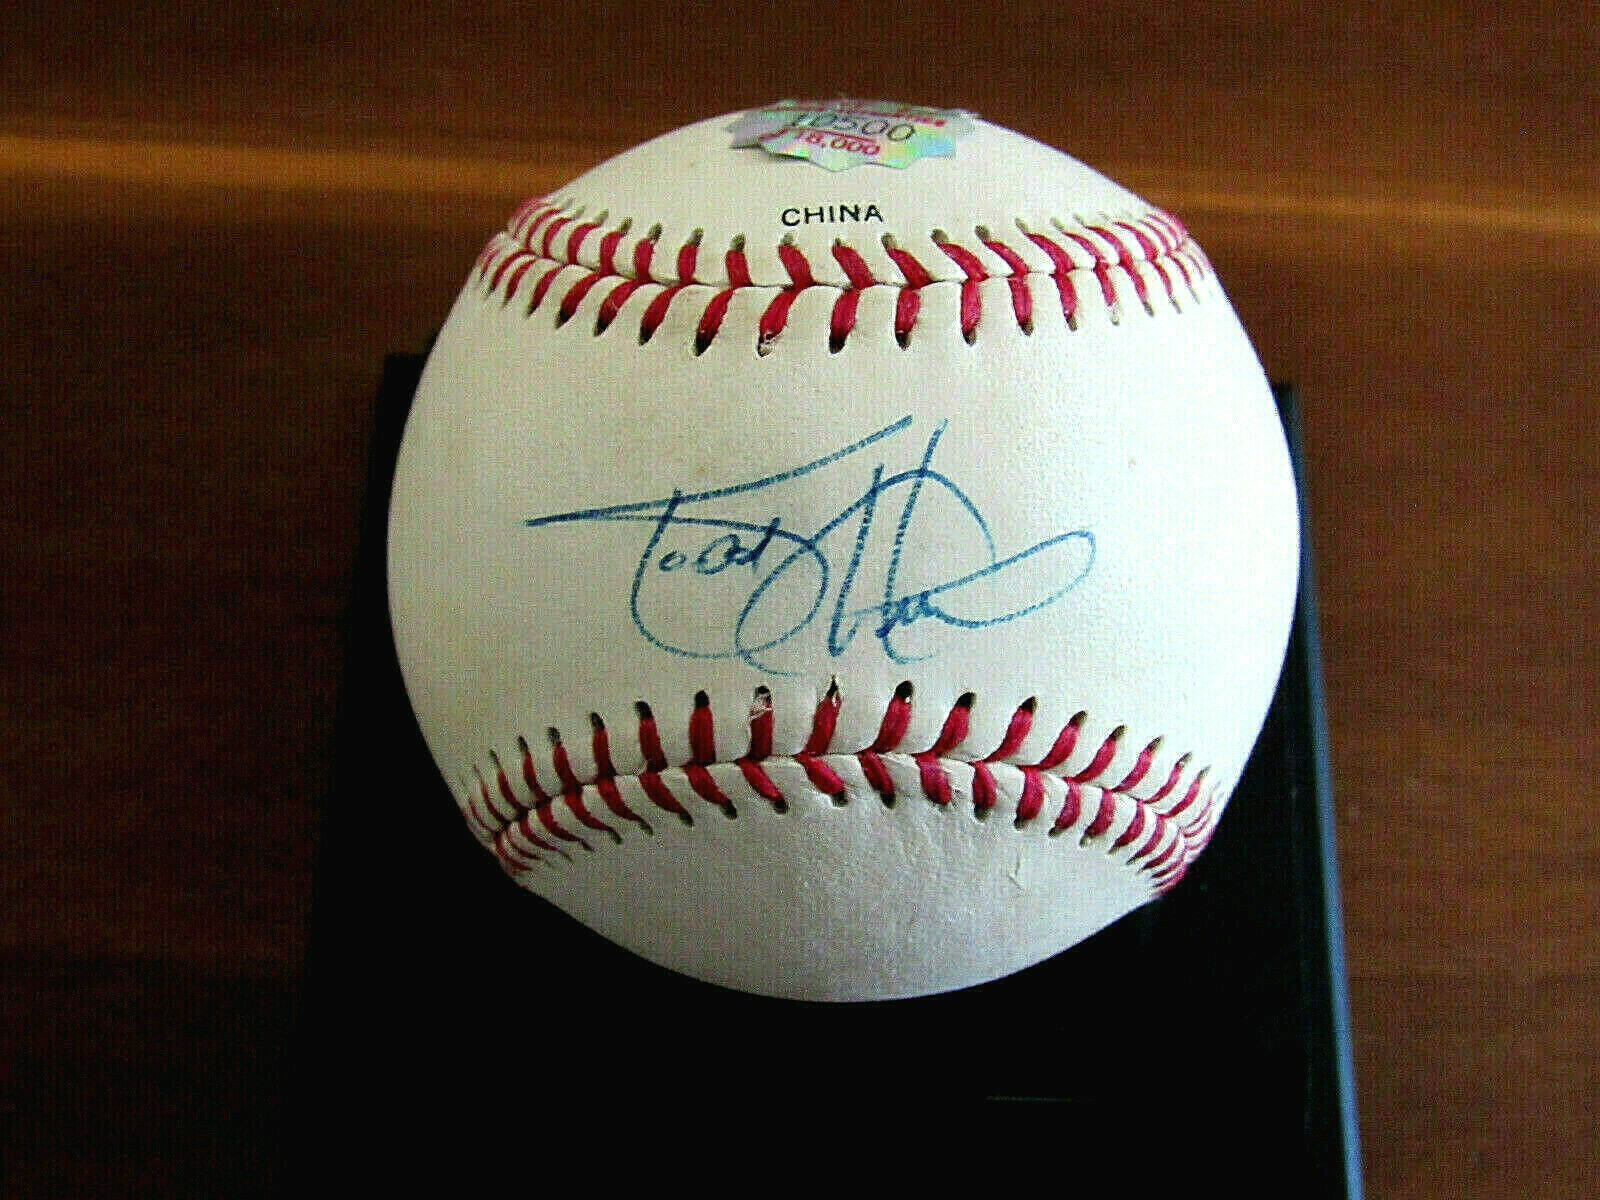 Primary image for TODD HELTON BATTING CHAMP ROCKIES SIGNED AUTO VTG L/E BASEBALL HIDDEN AUTHENTIC